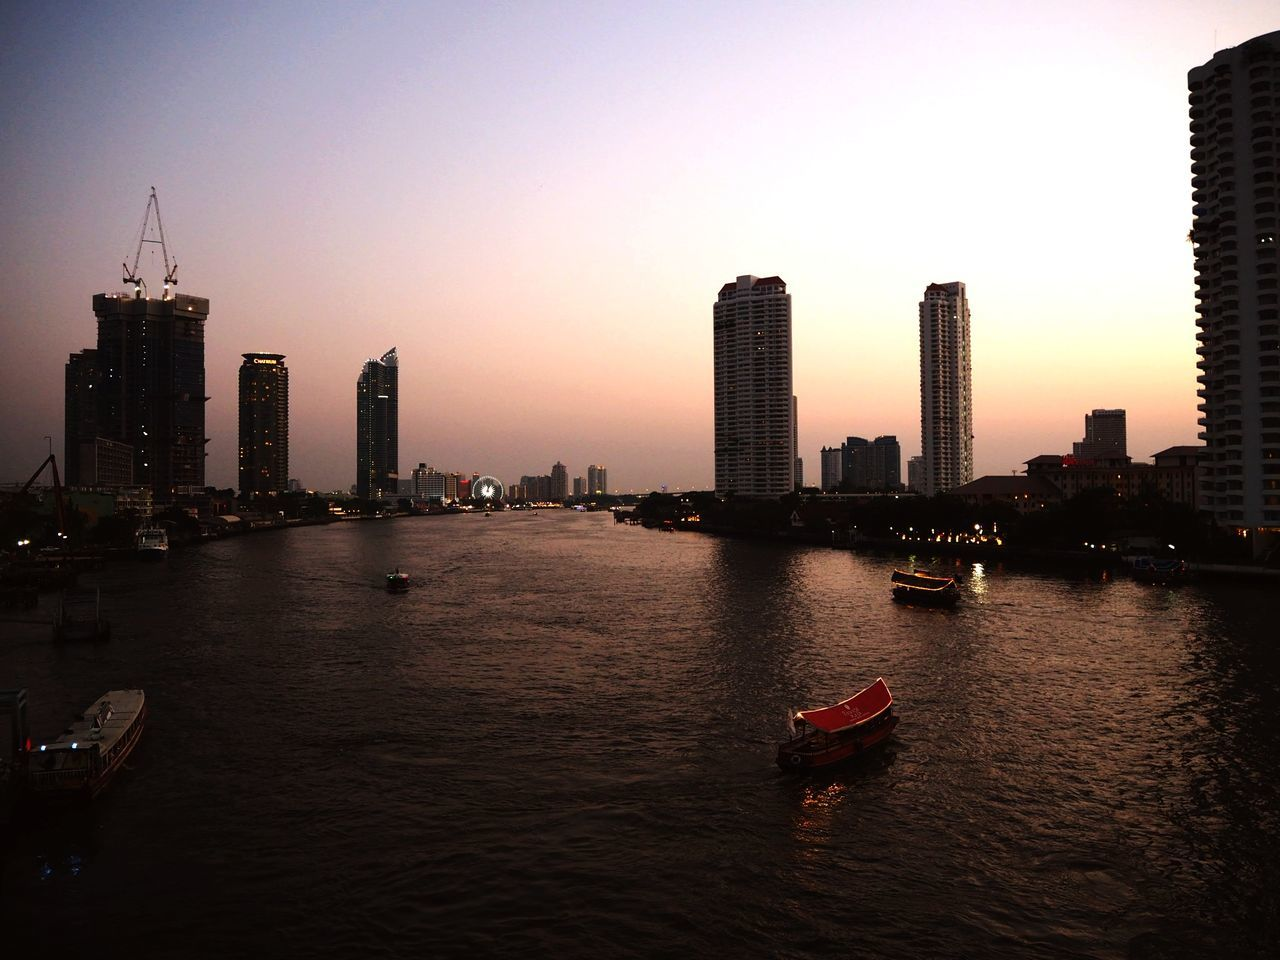 skyscraper, building exterior, architecture, sunset, city, built structure, cityscape, waterfront, urban skyline, river, outdoors, water, travel destinations, modern, clear sky, sky, no people, tall, nature, day